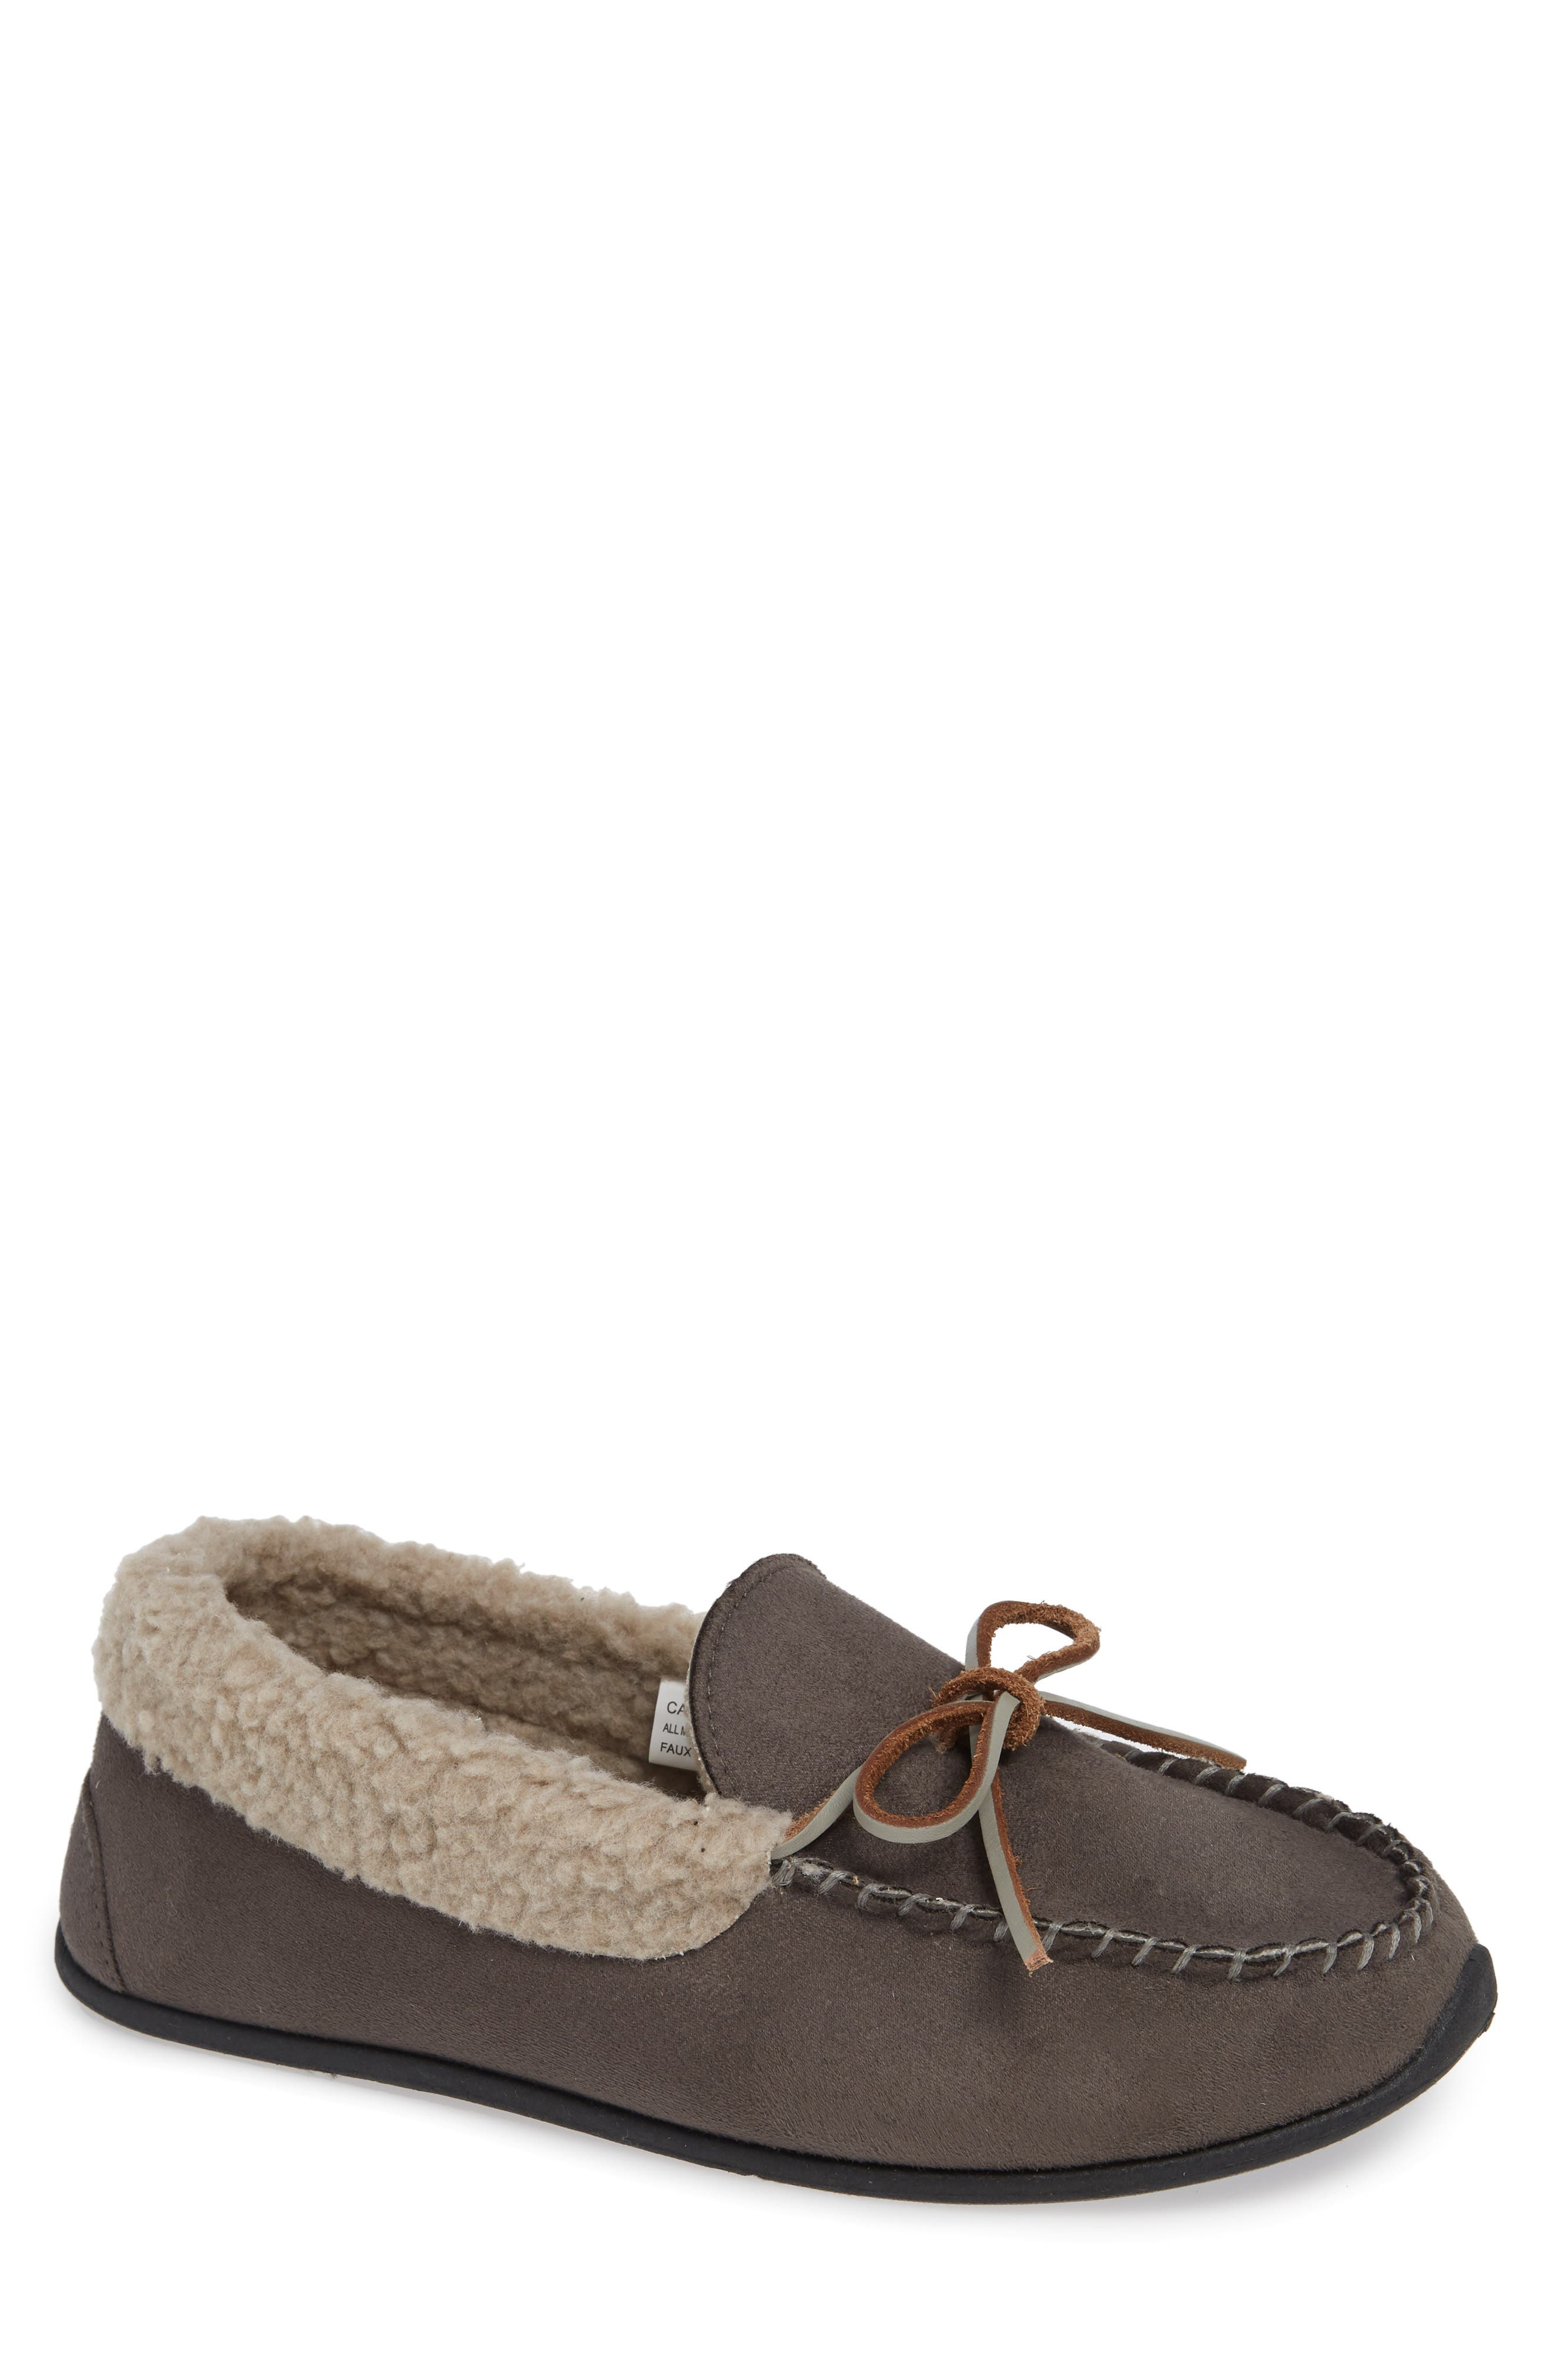 87857f7e1216 Men s Deer Stags Slippers   Moccasins